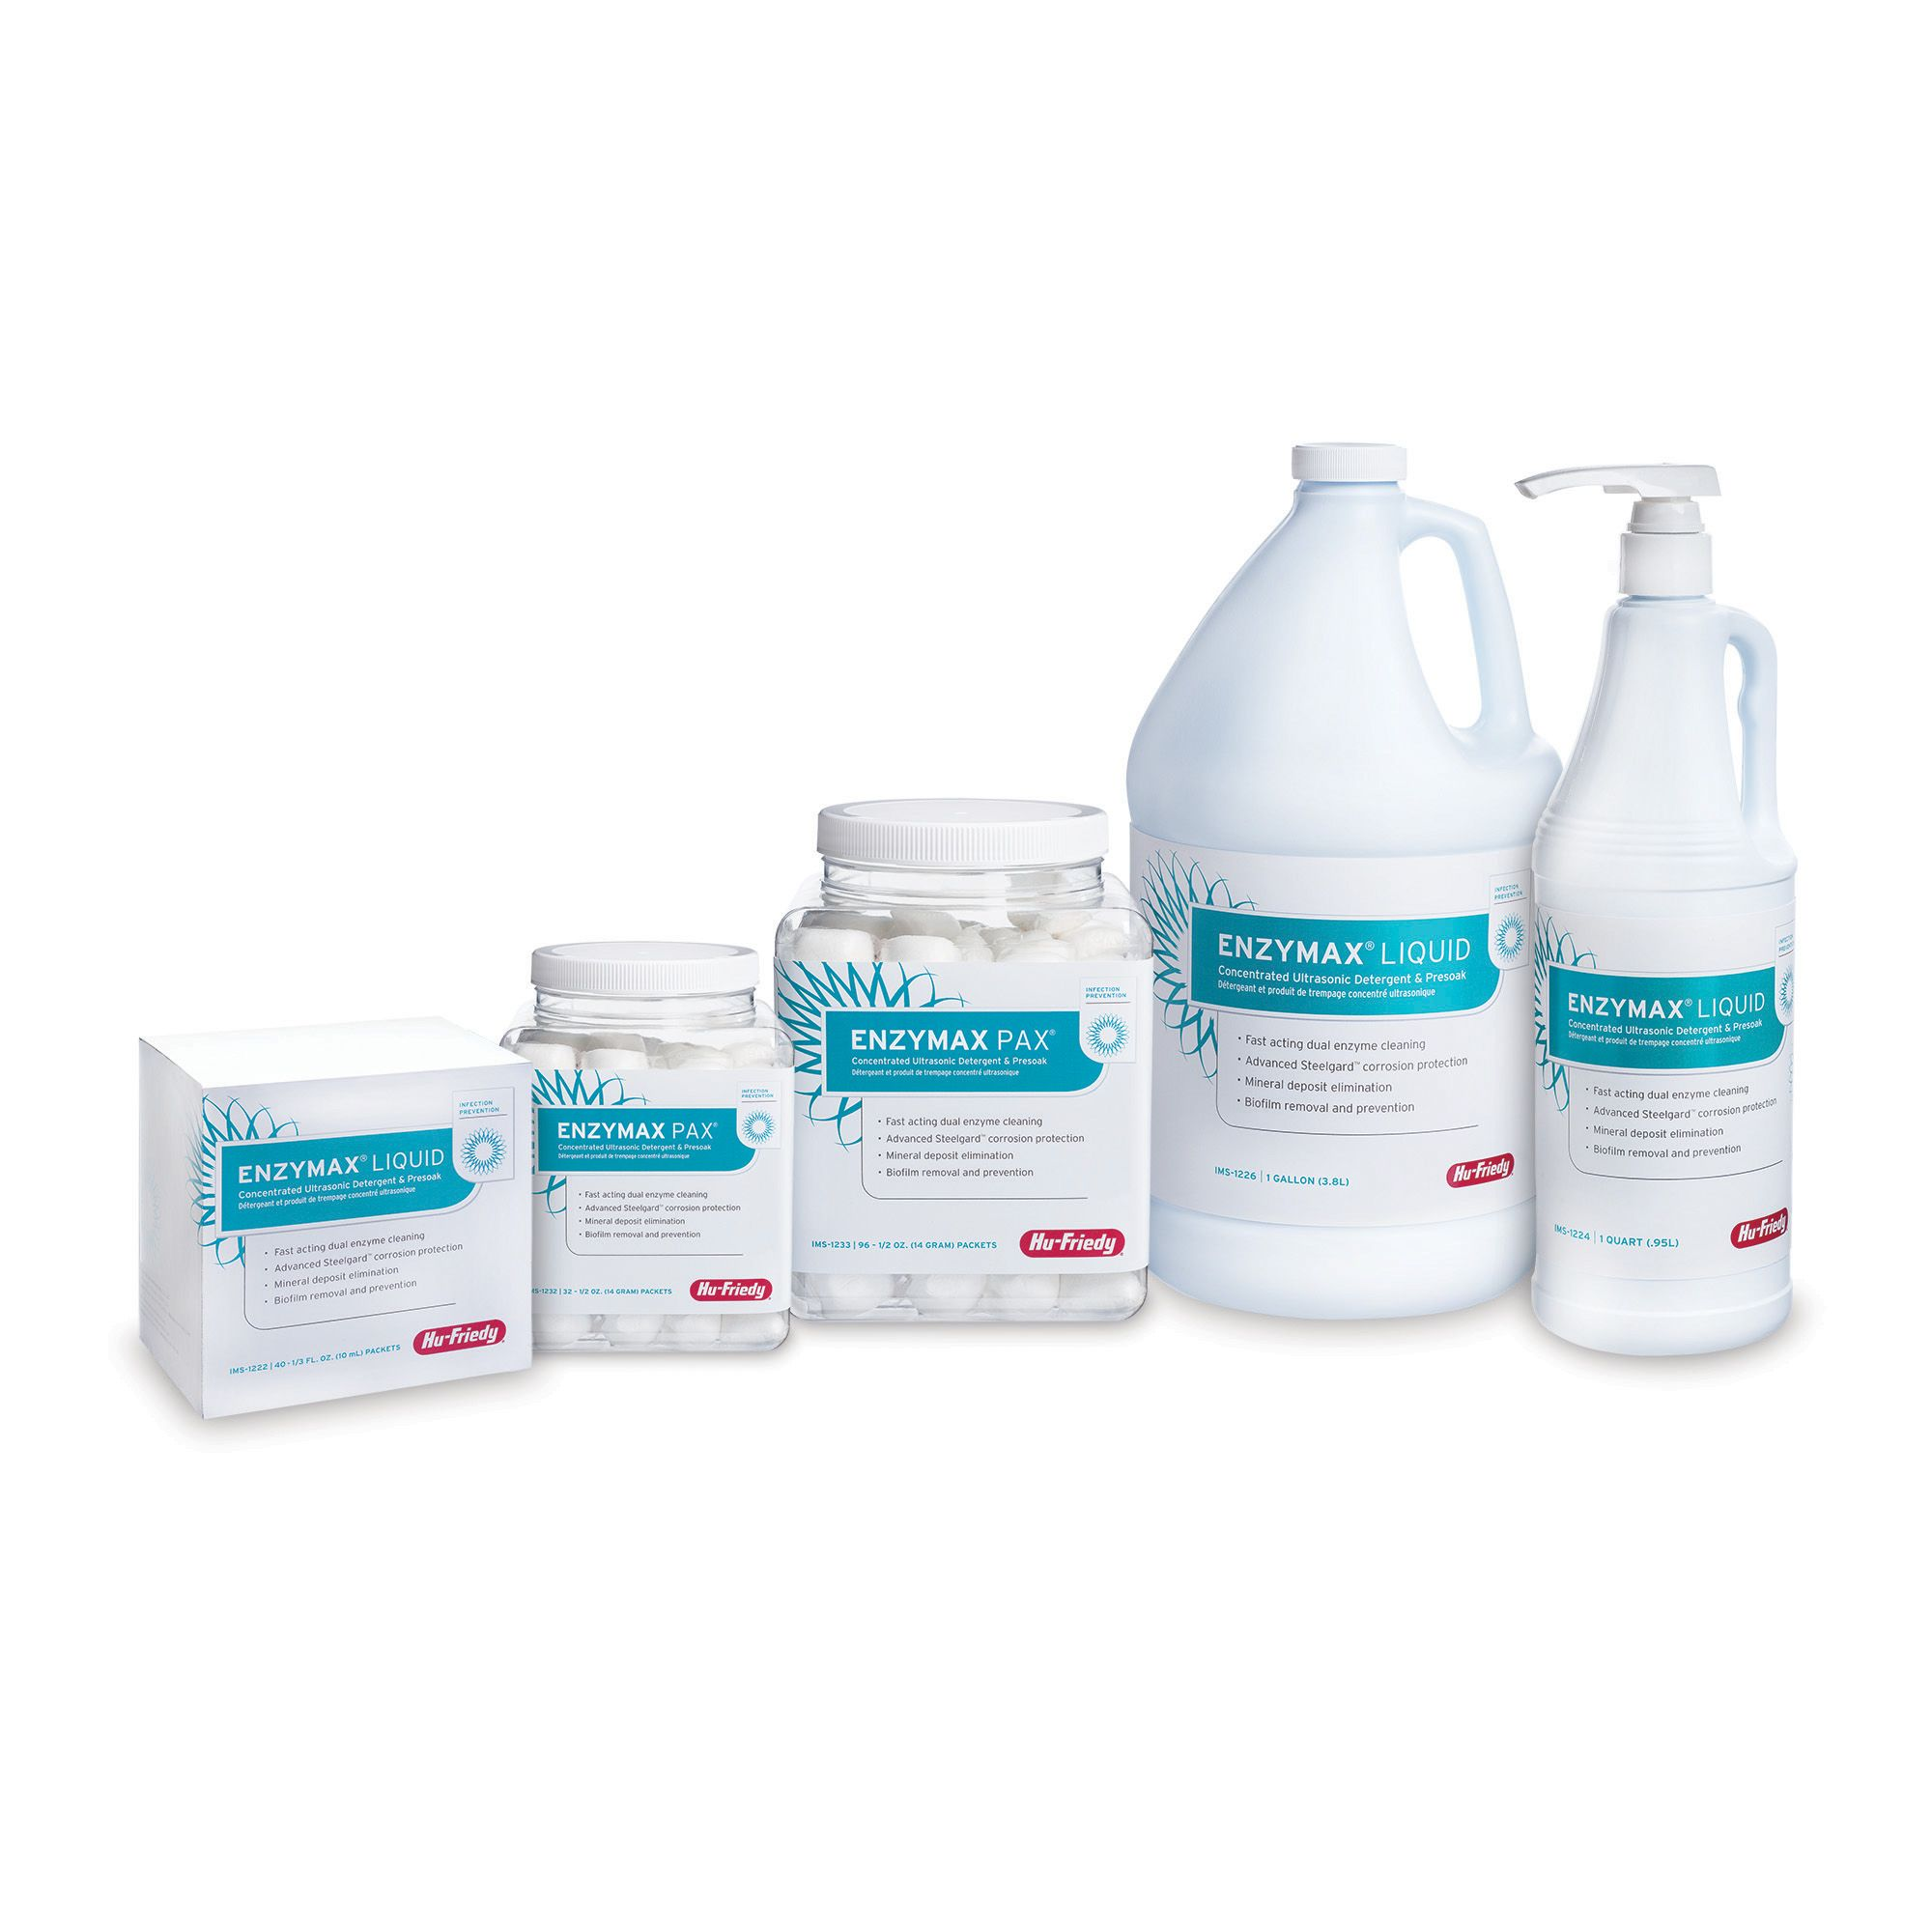 ENZYMAX® LIQUID CONCENTRATED ULTRASONIC DETERGENT AND